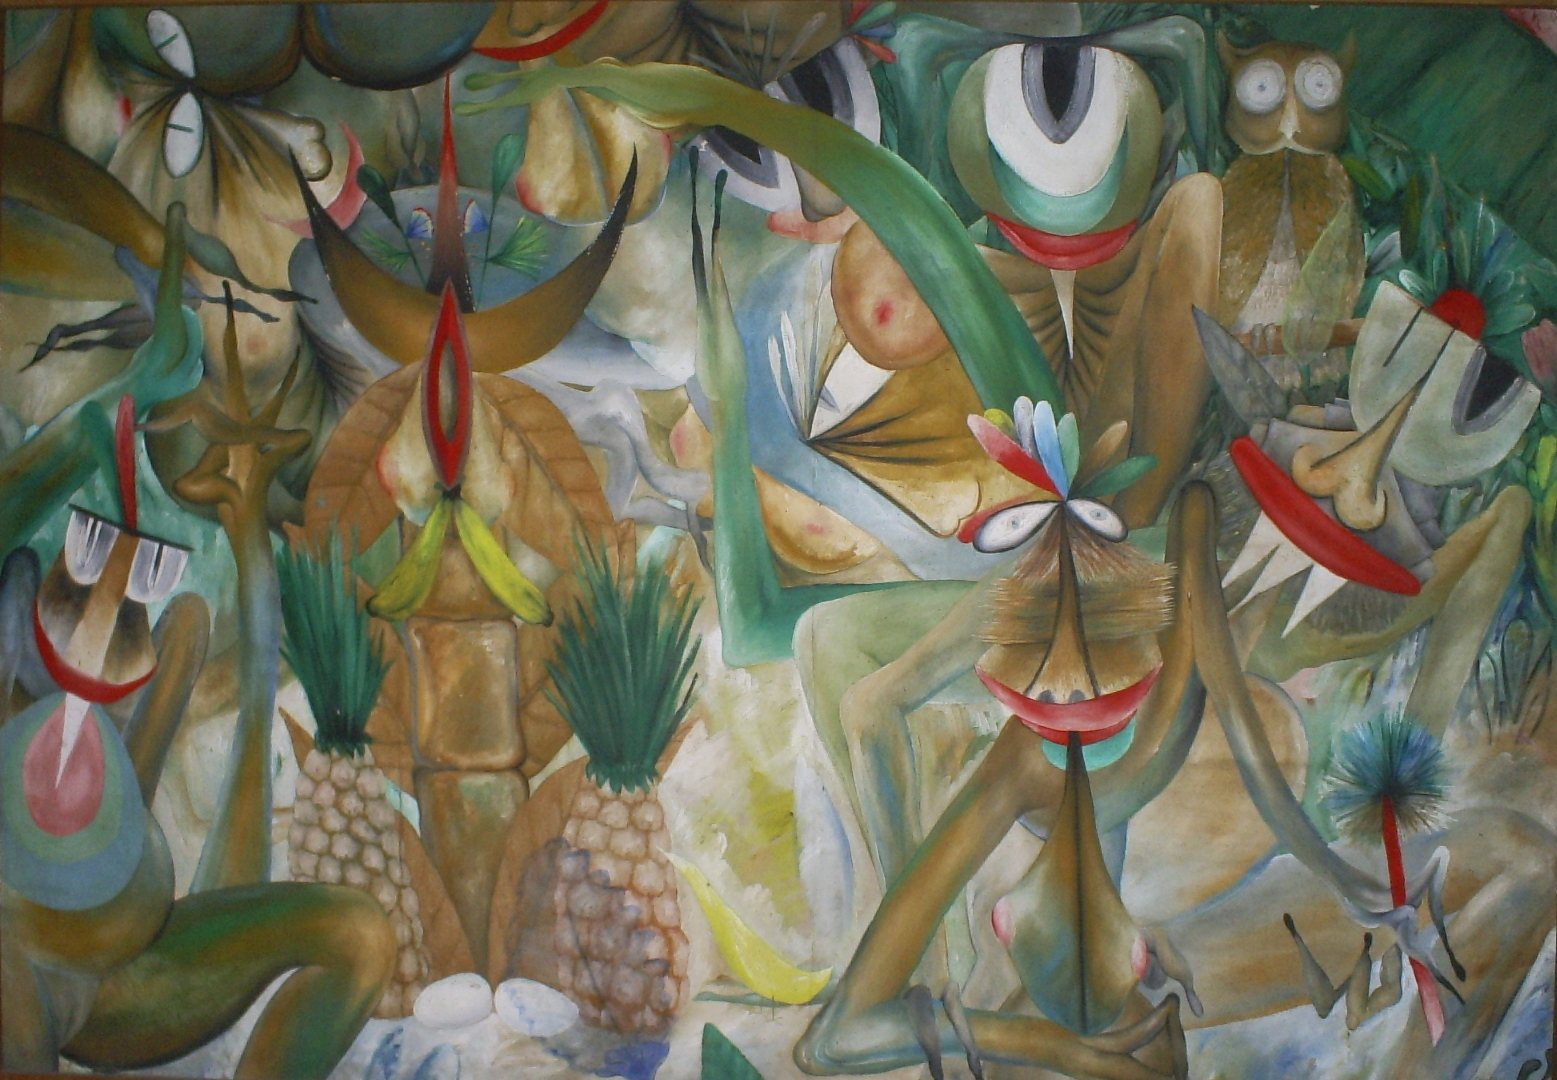 Manuel Couceiro,  Sin título  (Untitled), date unknown. [Image Description: An abstract rectangular painting composed in brown, green, red, and yellow, features a swirl of humanoid figures with distorted bodies and faces among green leaves. Between the figures are fruits including pineapples and bananas, while an owl, perched on a branch, peers outward from the top right corner.]